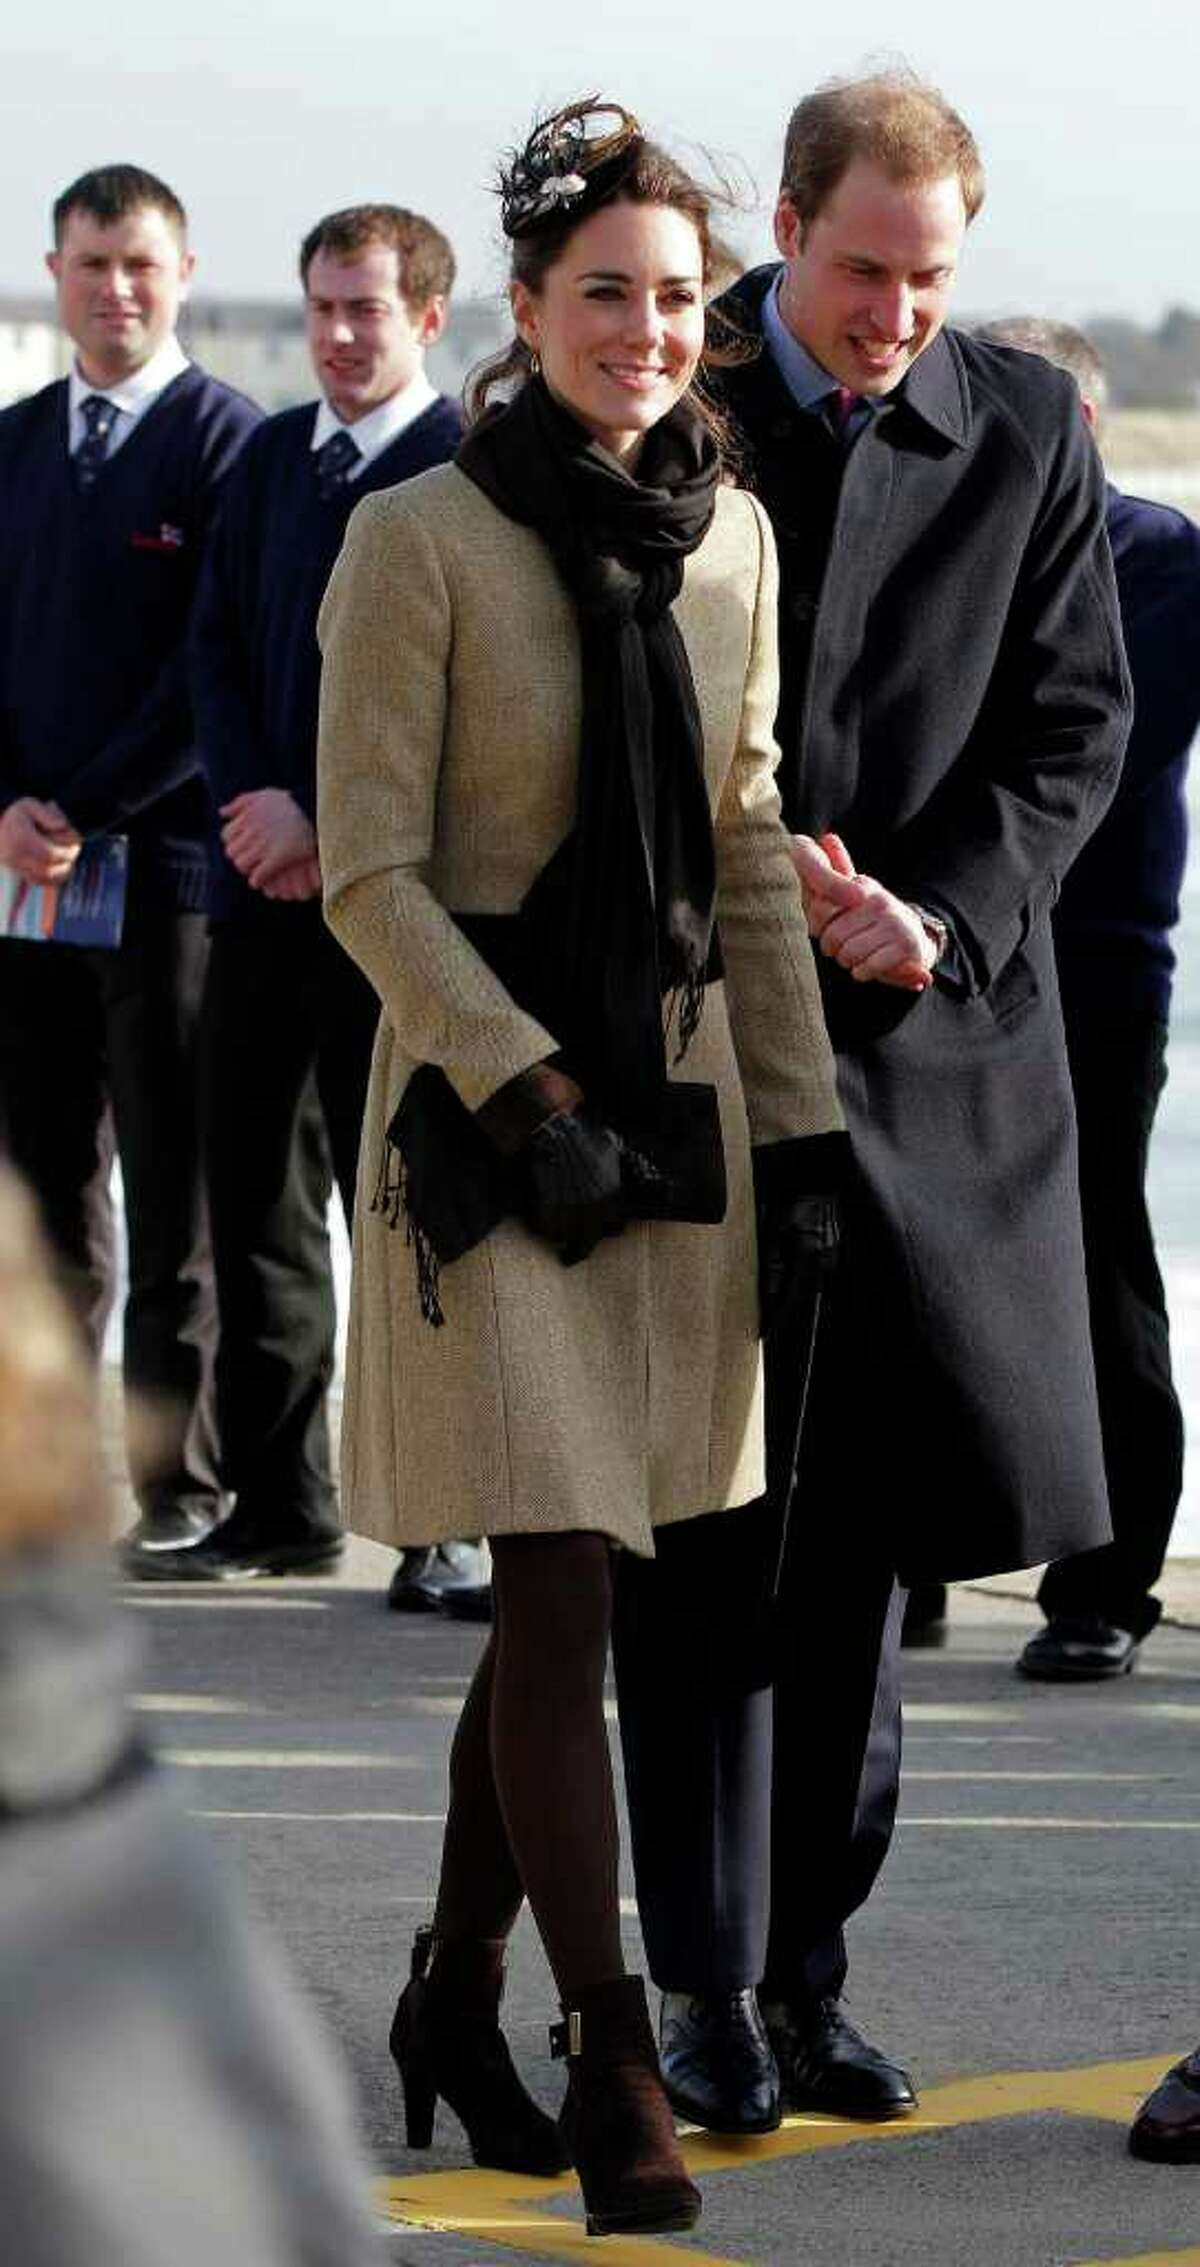 Britain's Prince William and his fiance Kate Middleton attend a naming ceremony and Service dedication for the Royal National Lifeboat Institution's new Atlantic 85 Lifeboat, at Trearddur Bay Lifeboat Station in Anglesey, Wales, Thursday Feb. 24, 2011. The visit had been highly anticipated because the couple have kept such a low profile since announcing their engagement in November, making only one other prior appearance at a charity event. They plan to marry April 29 at Westminster Abbey with just under 2,000 guests attending. (AP Photo/Phil Noble, Pool)